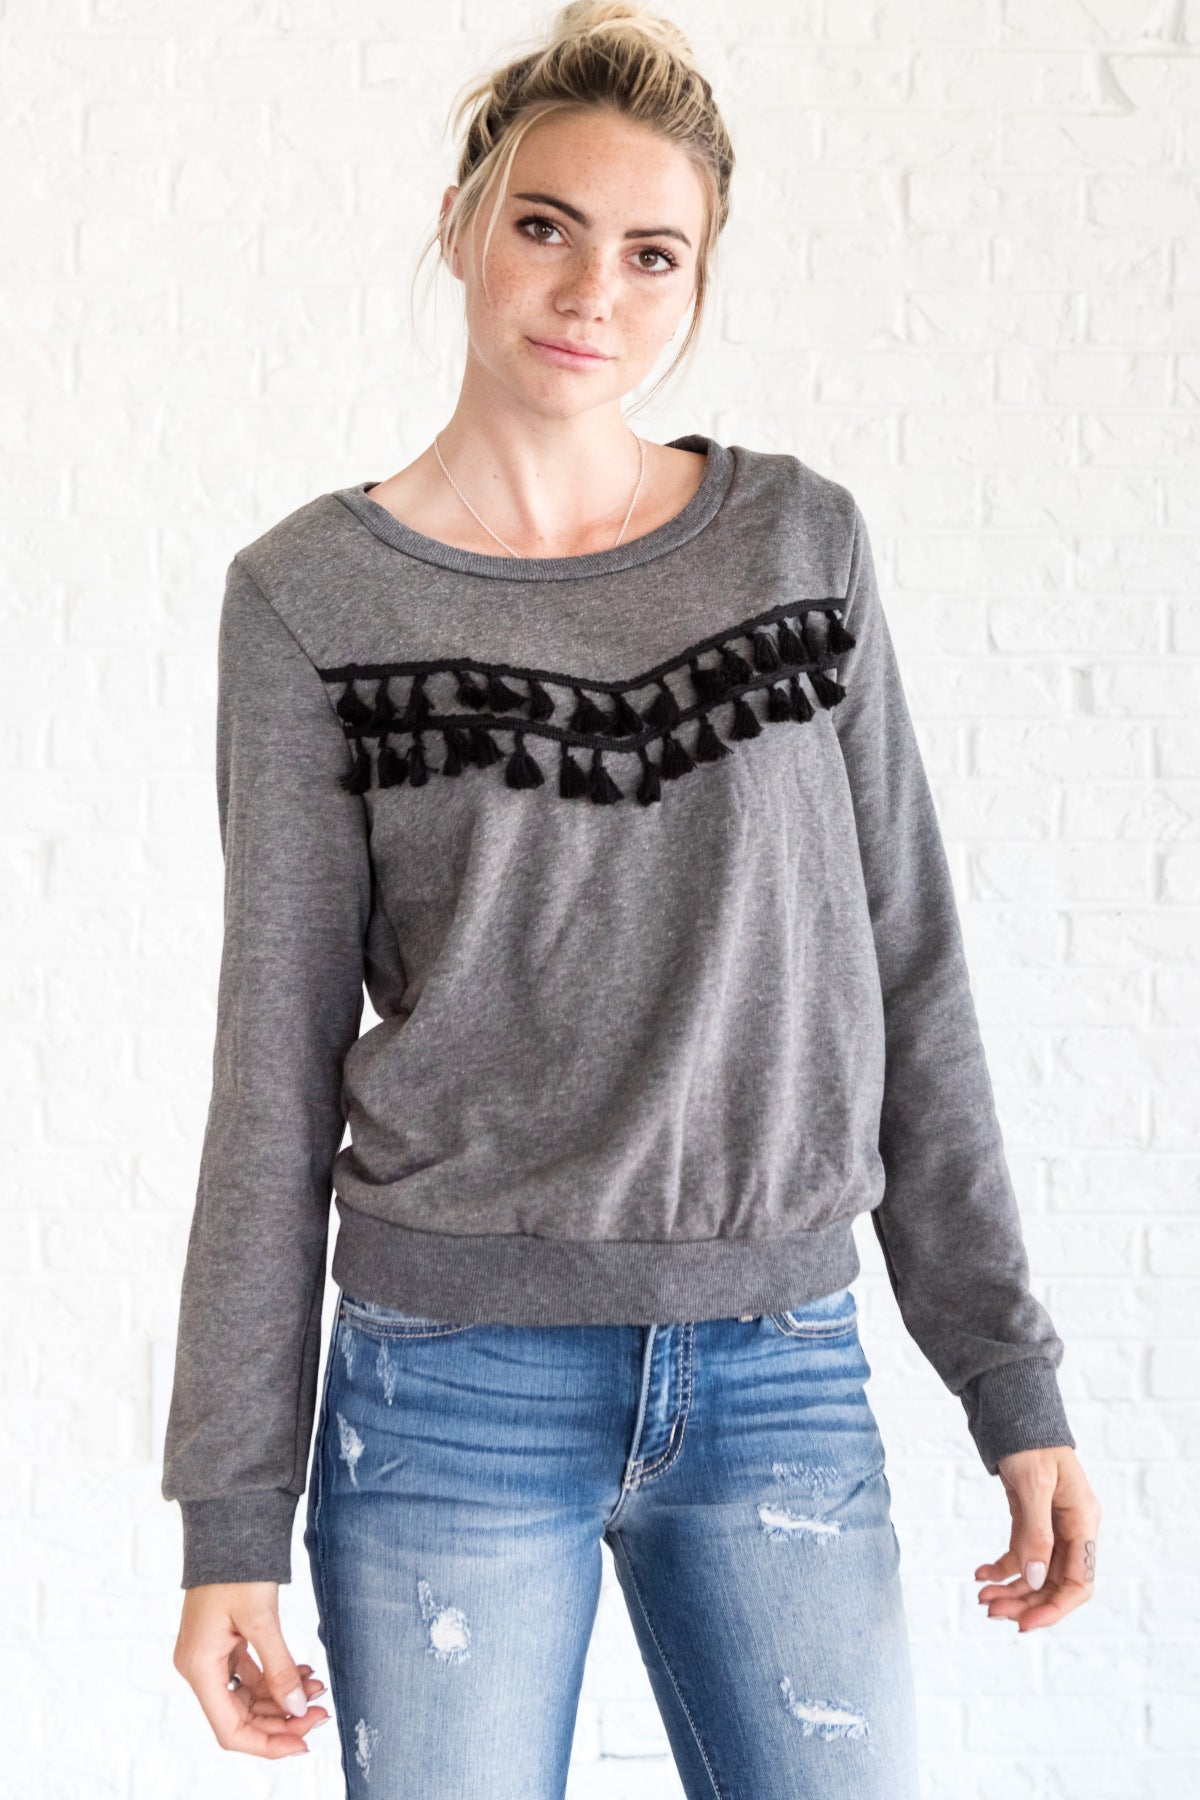 Charcoal Gray Tassel Boho Dimensional Pullover Sweater